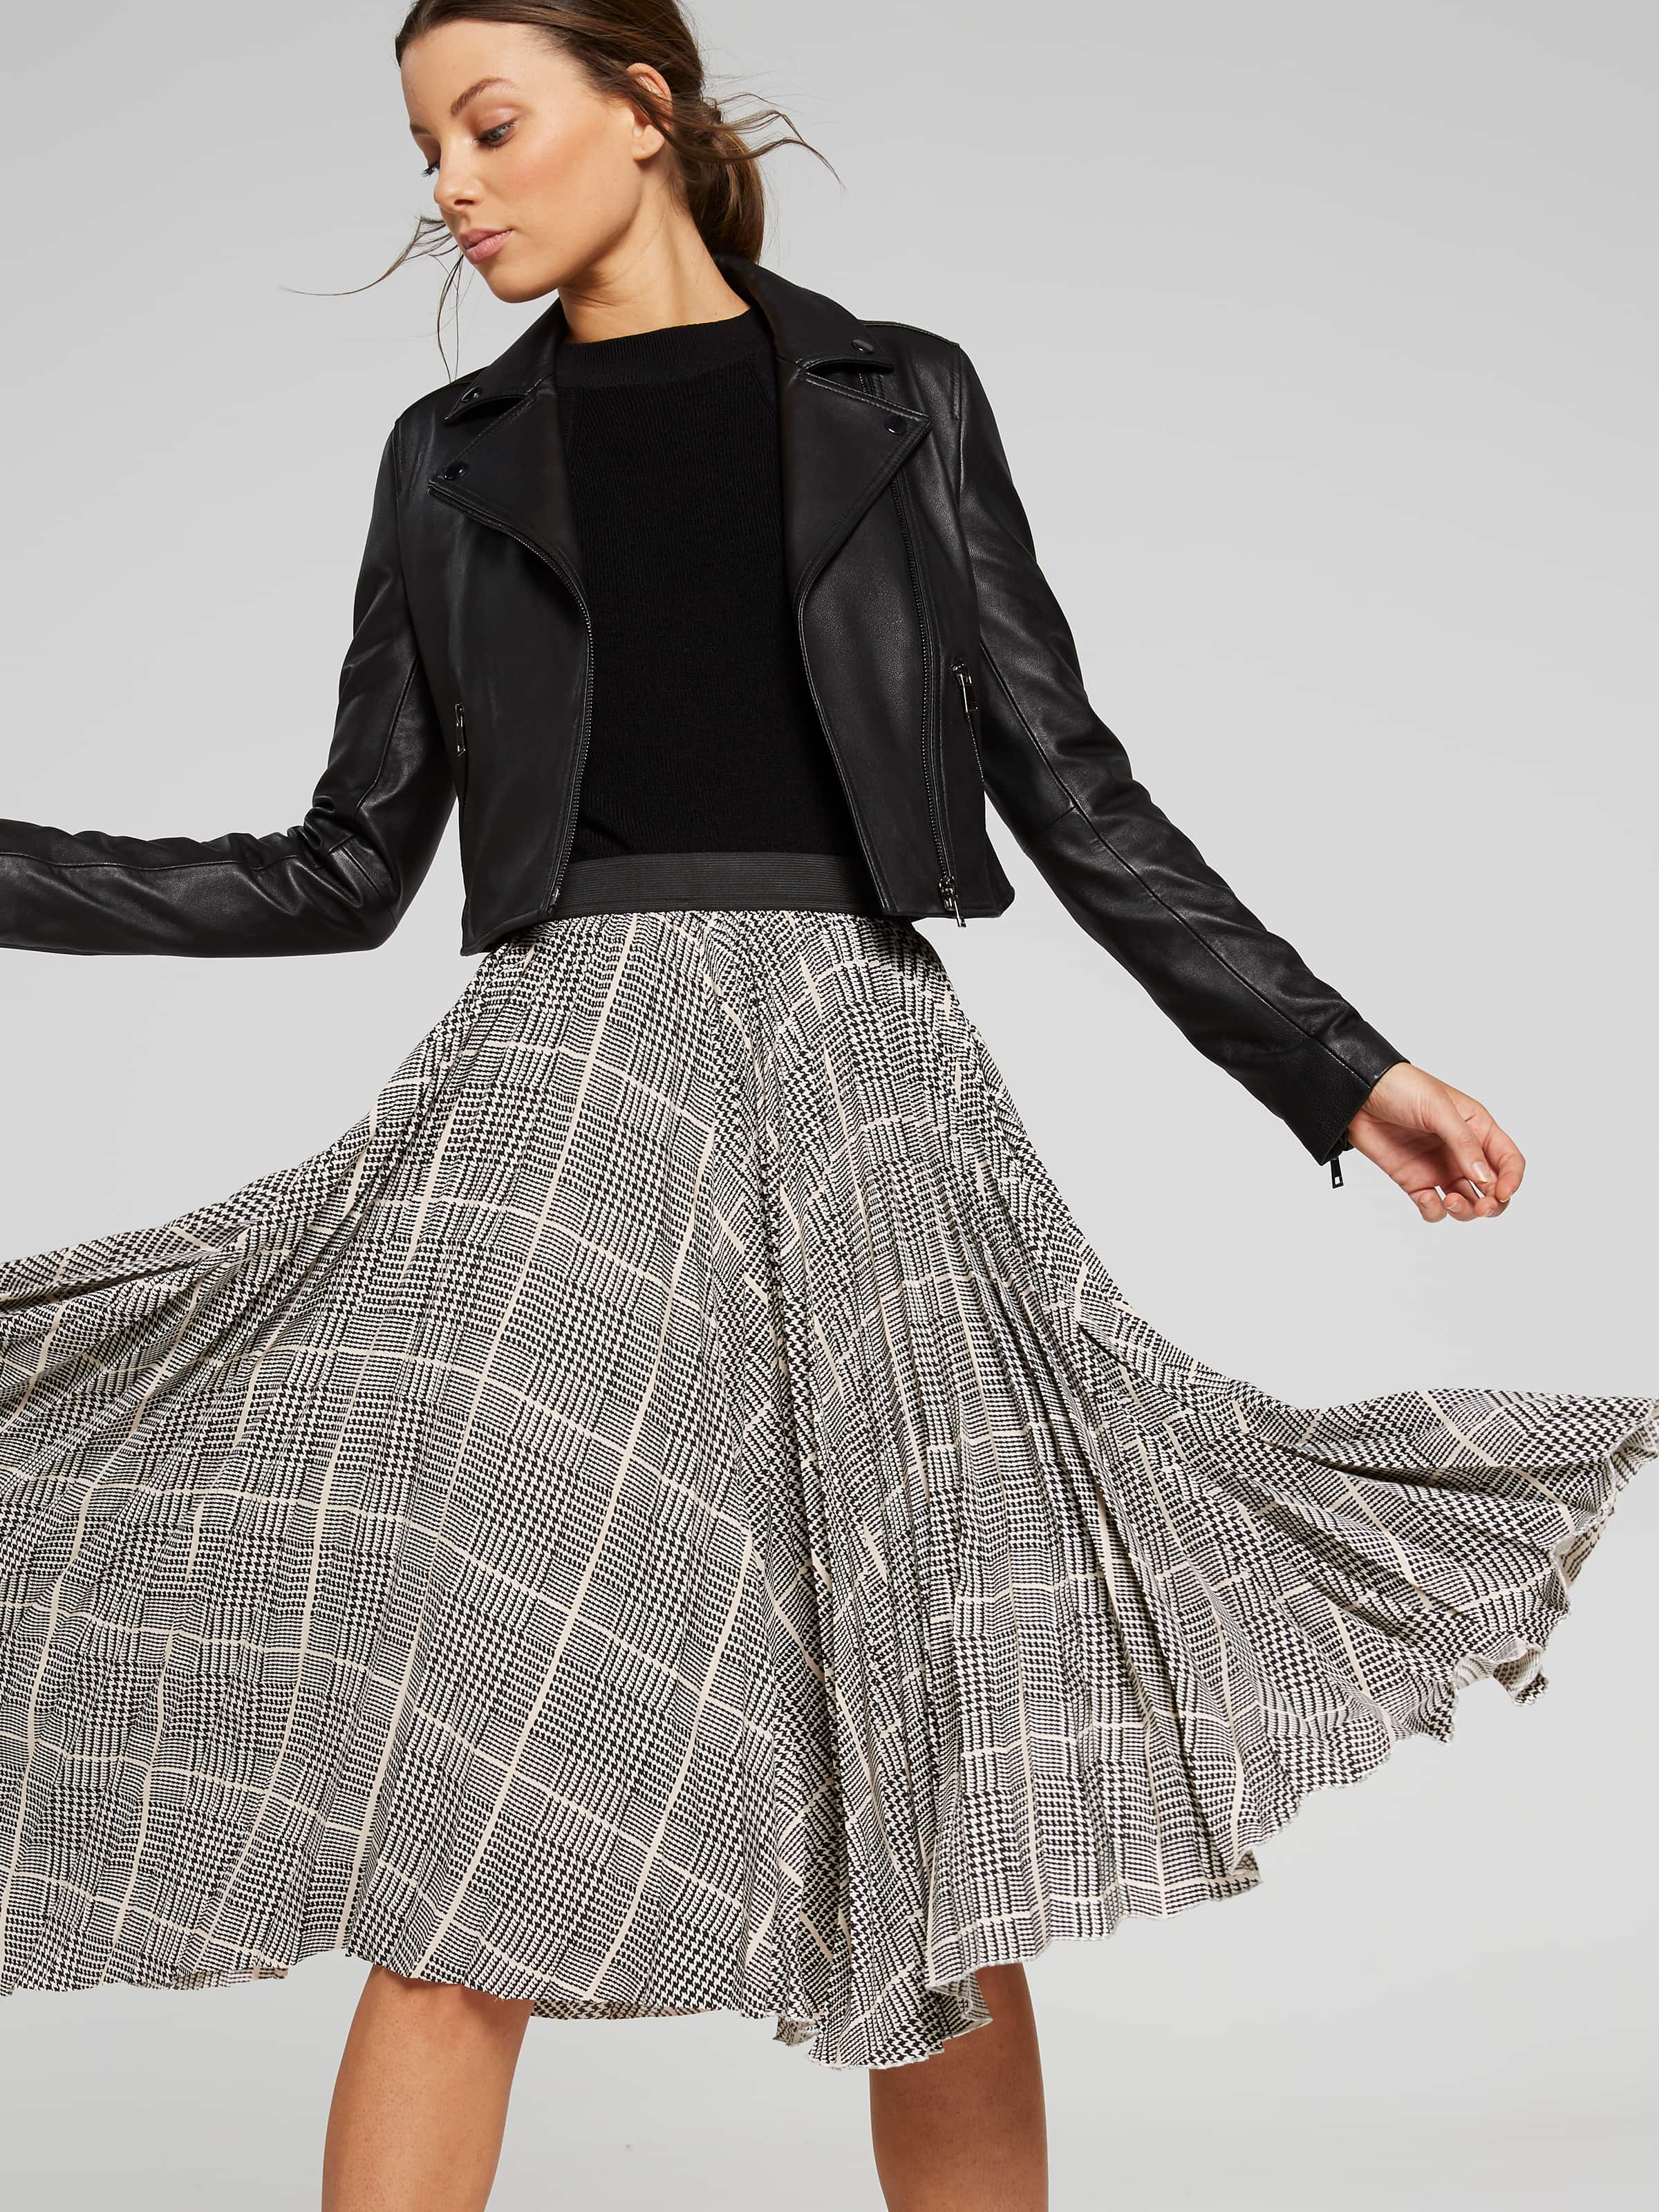 338a4014e5 Image for Check It Out Pleated Skirt from Portmans ...